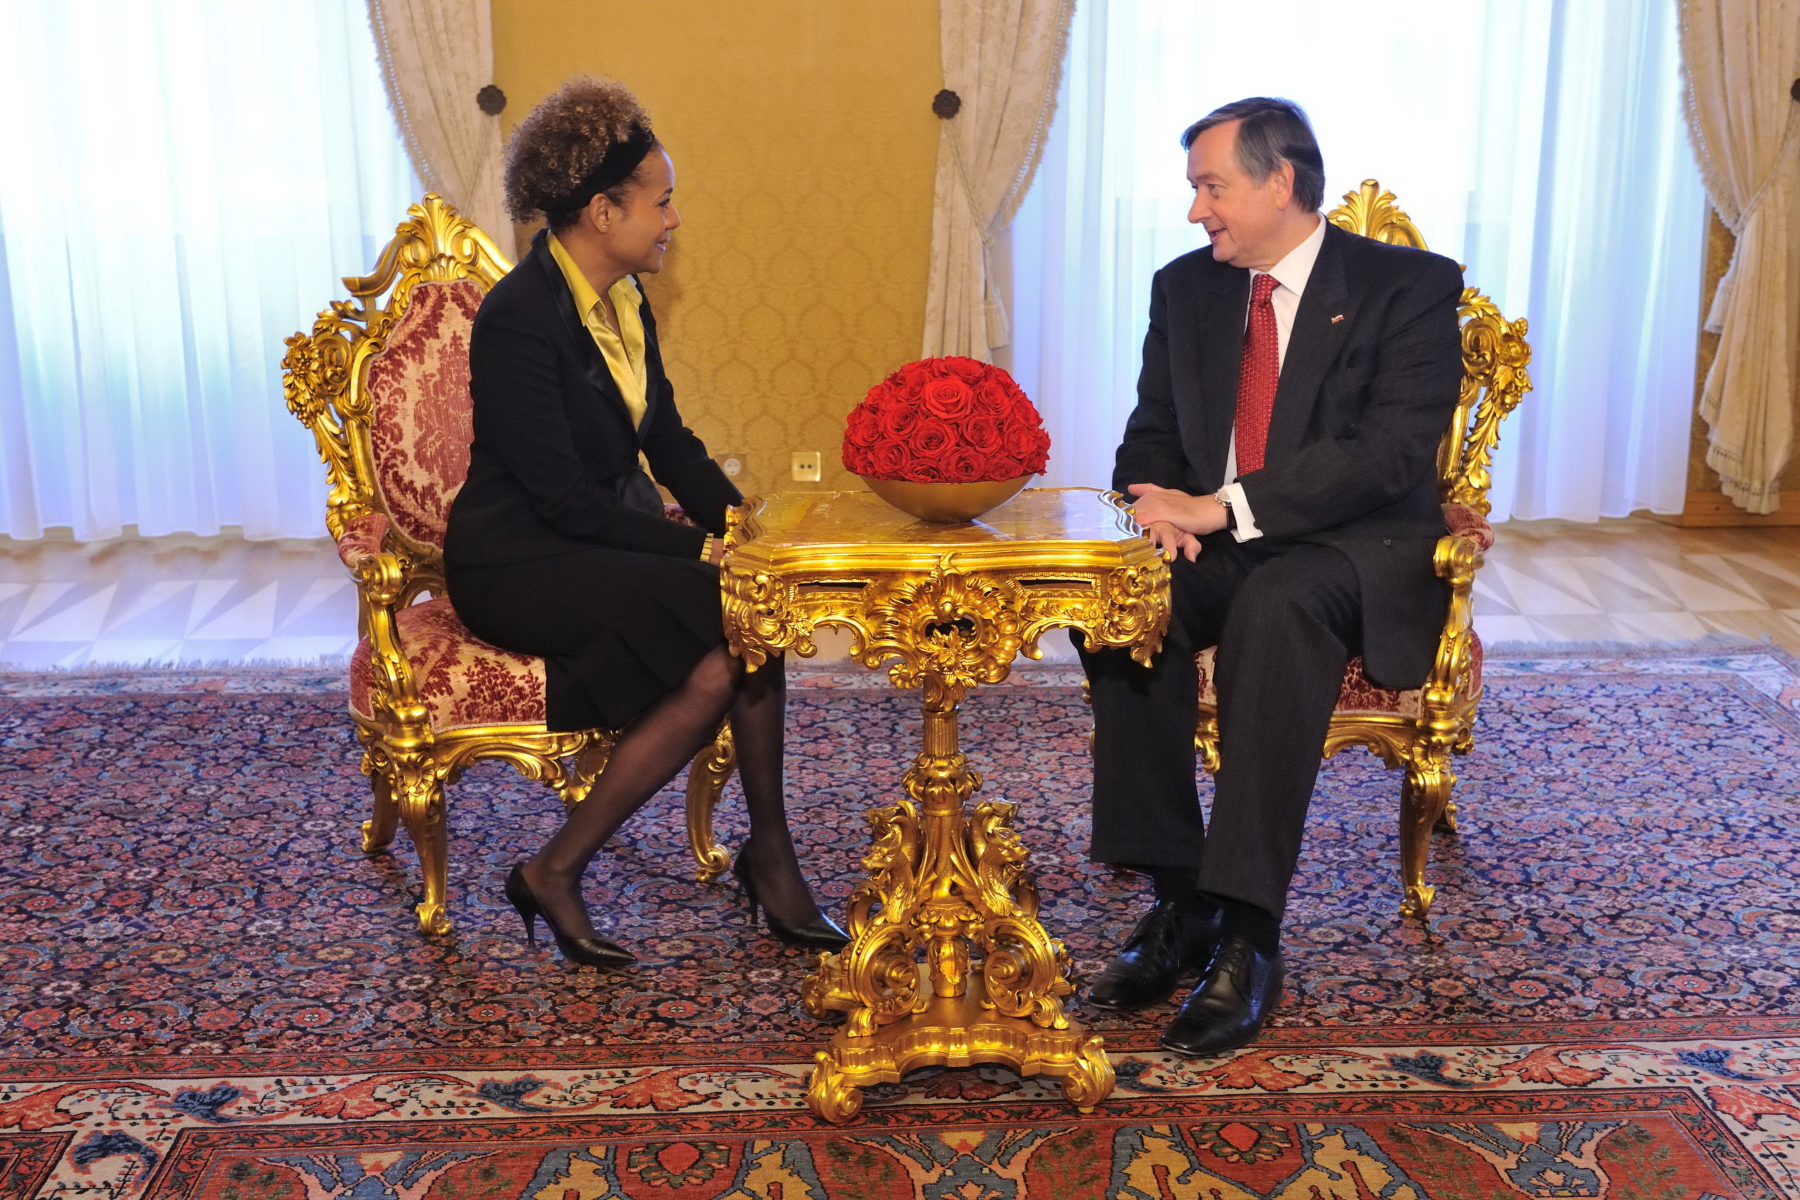 During their private meeting, Her Excellency and the President discussed relations between Canada and Slovenia.